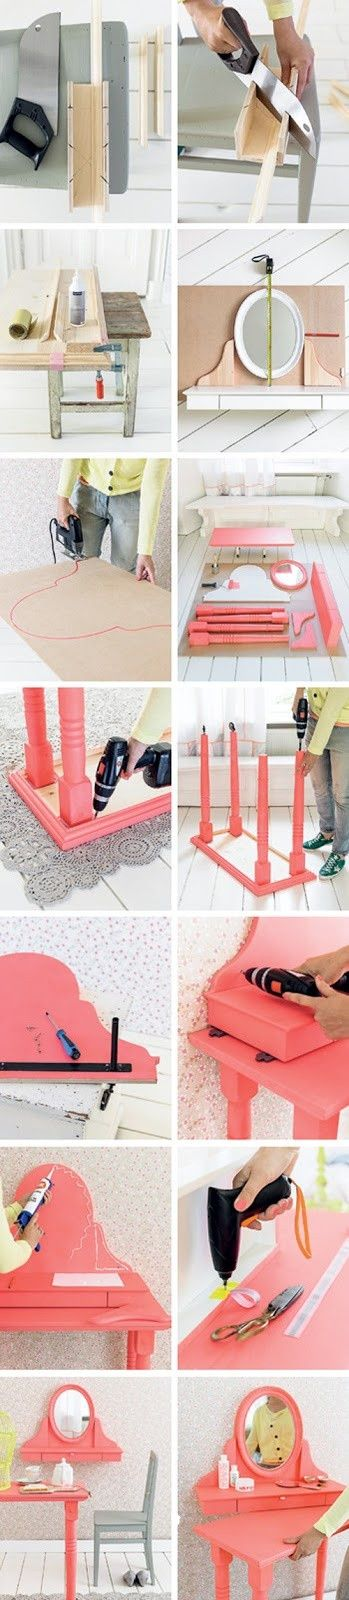 I'm sensing a Christmas or B-Day present for baby girl. What a great project for…